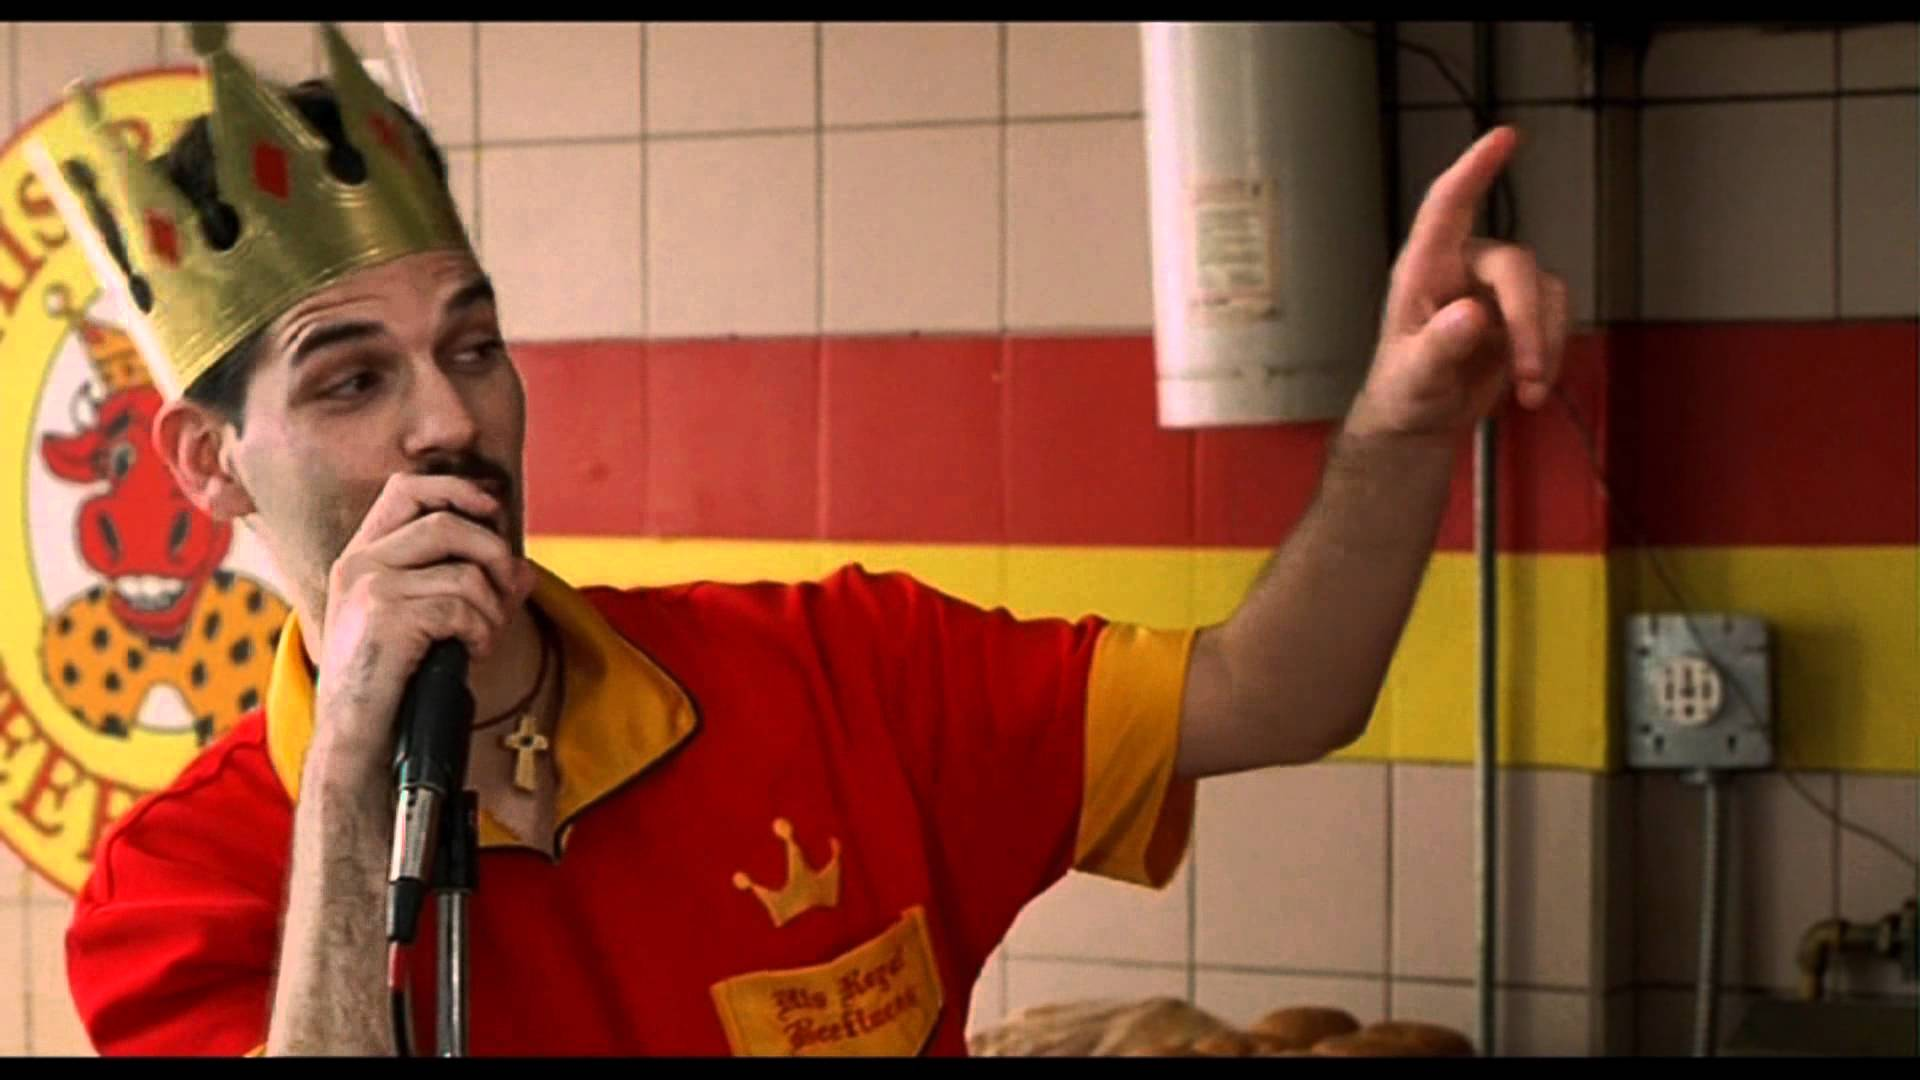 'Scarface' from Half Baked stomps all over his employer's attempts at employee retention